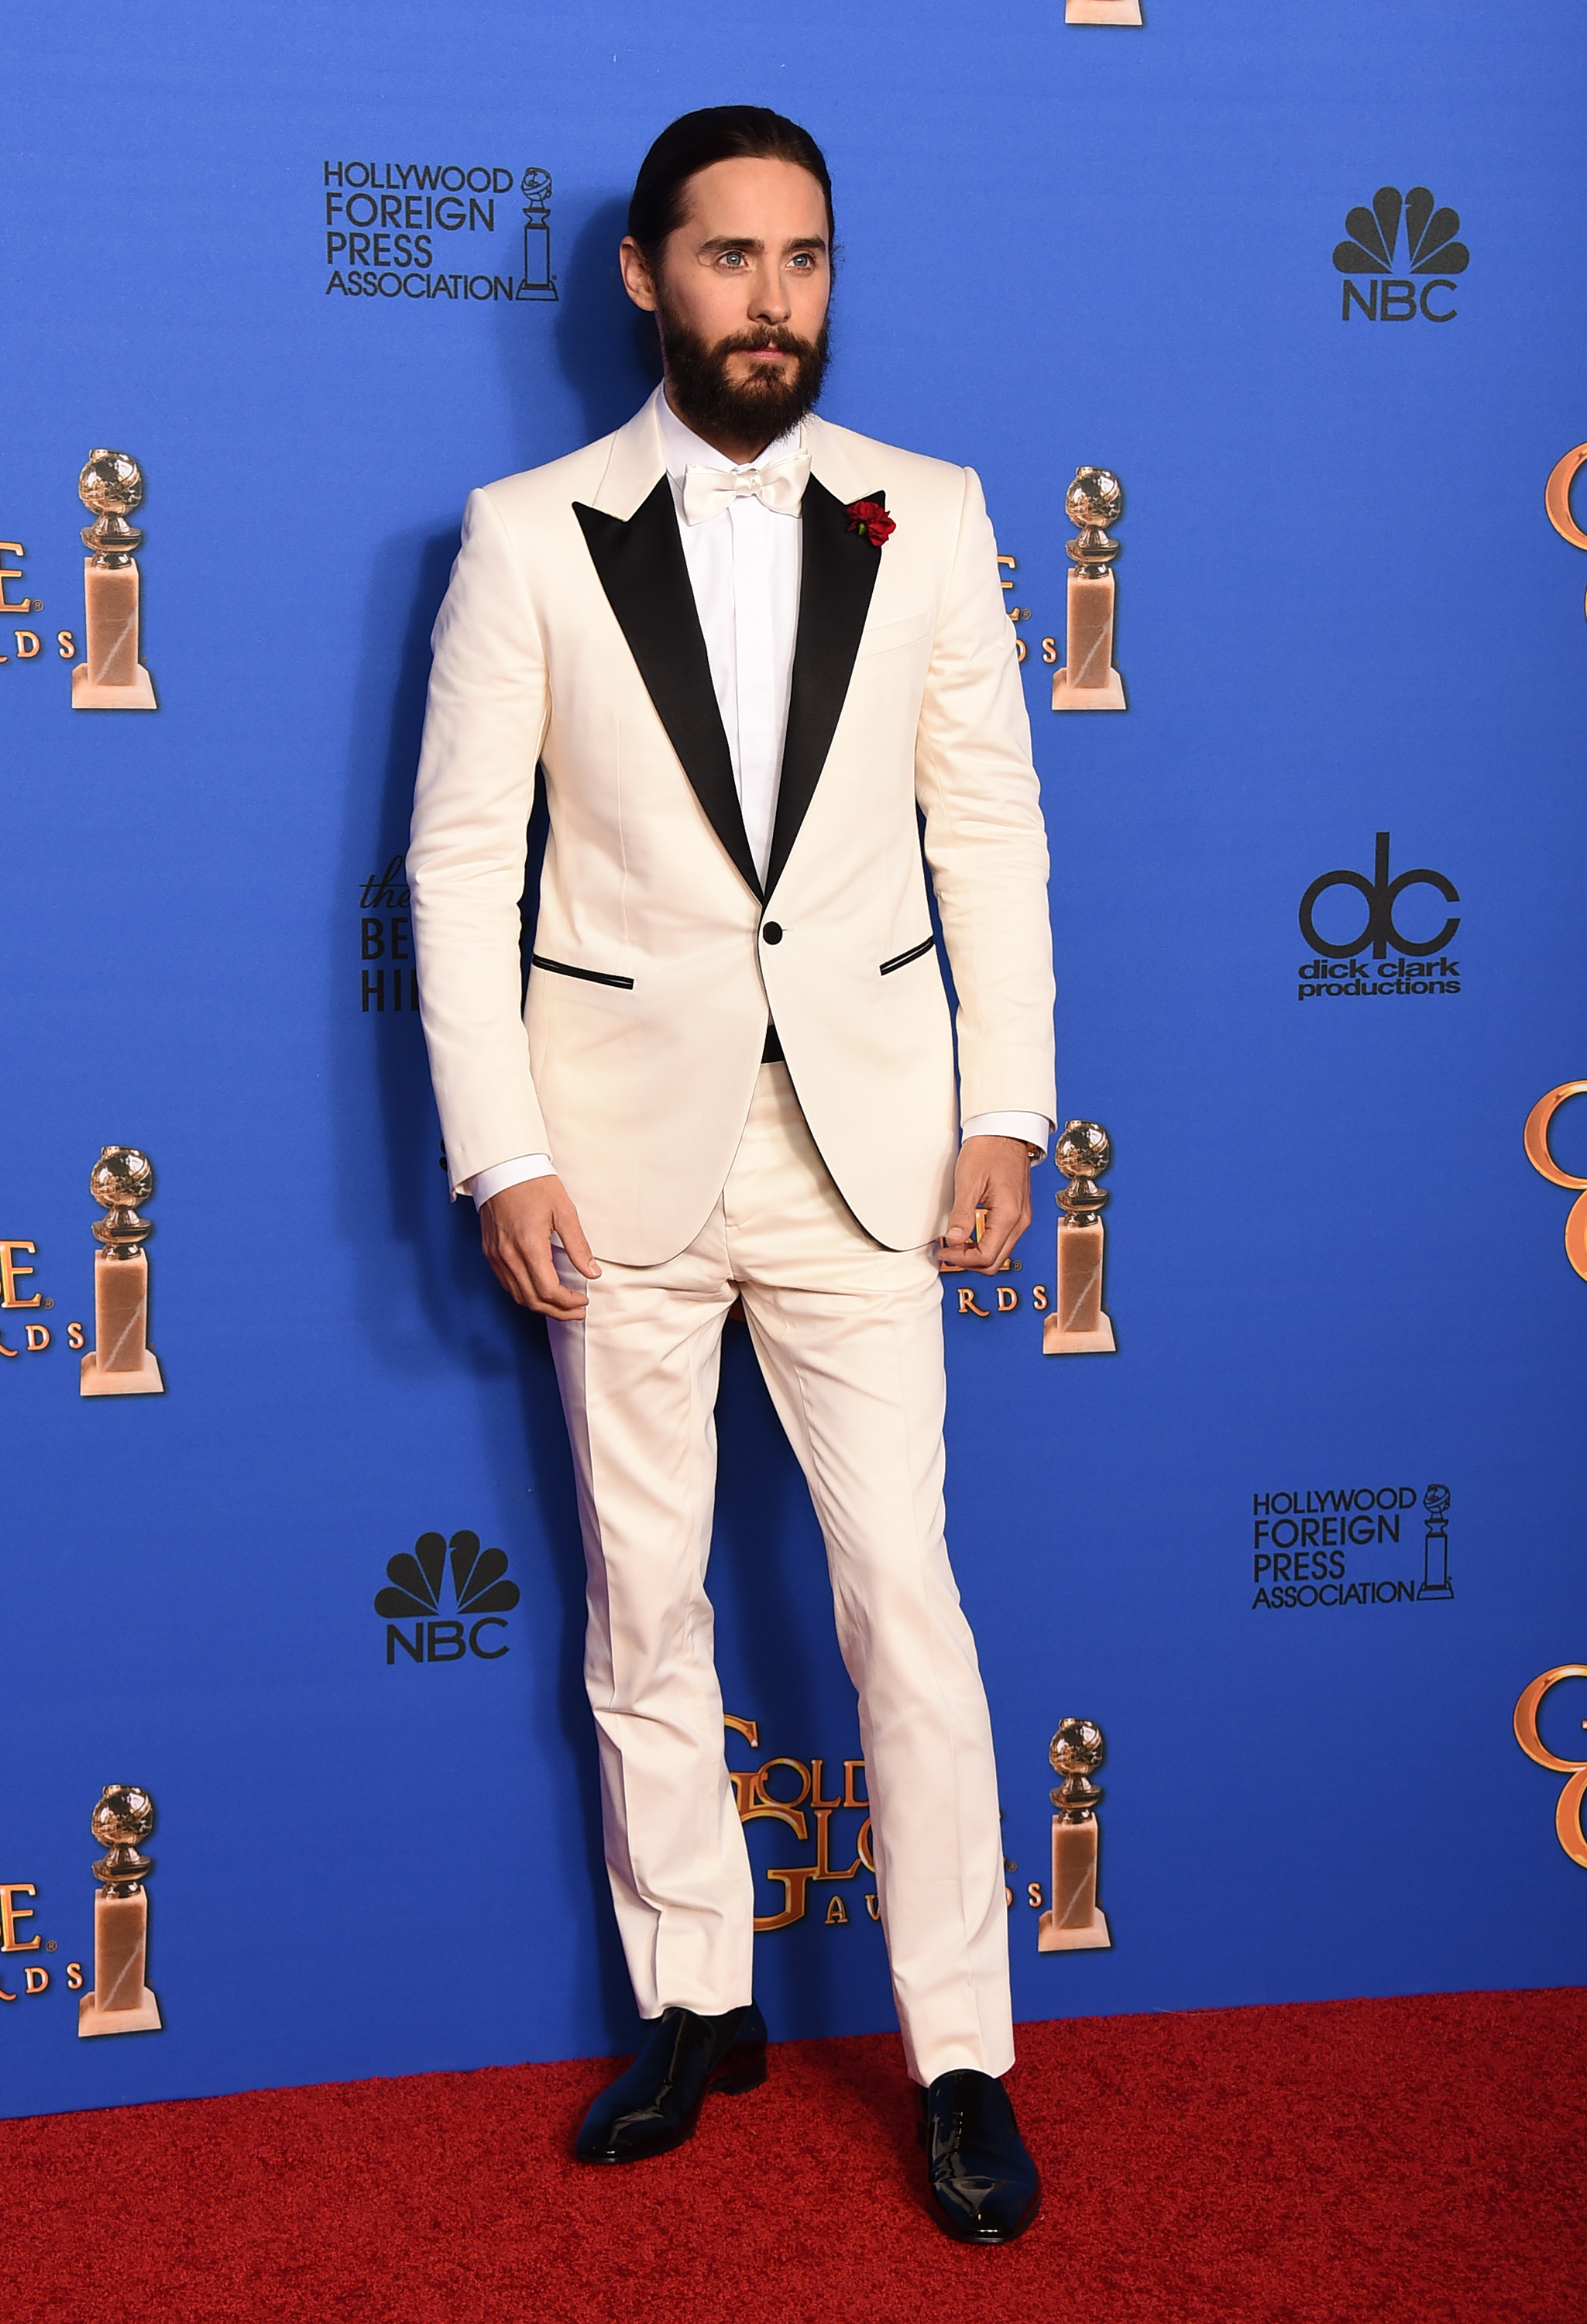 Best Dressed Men at the Golden Globes Awards 2015 ...